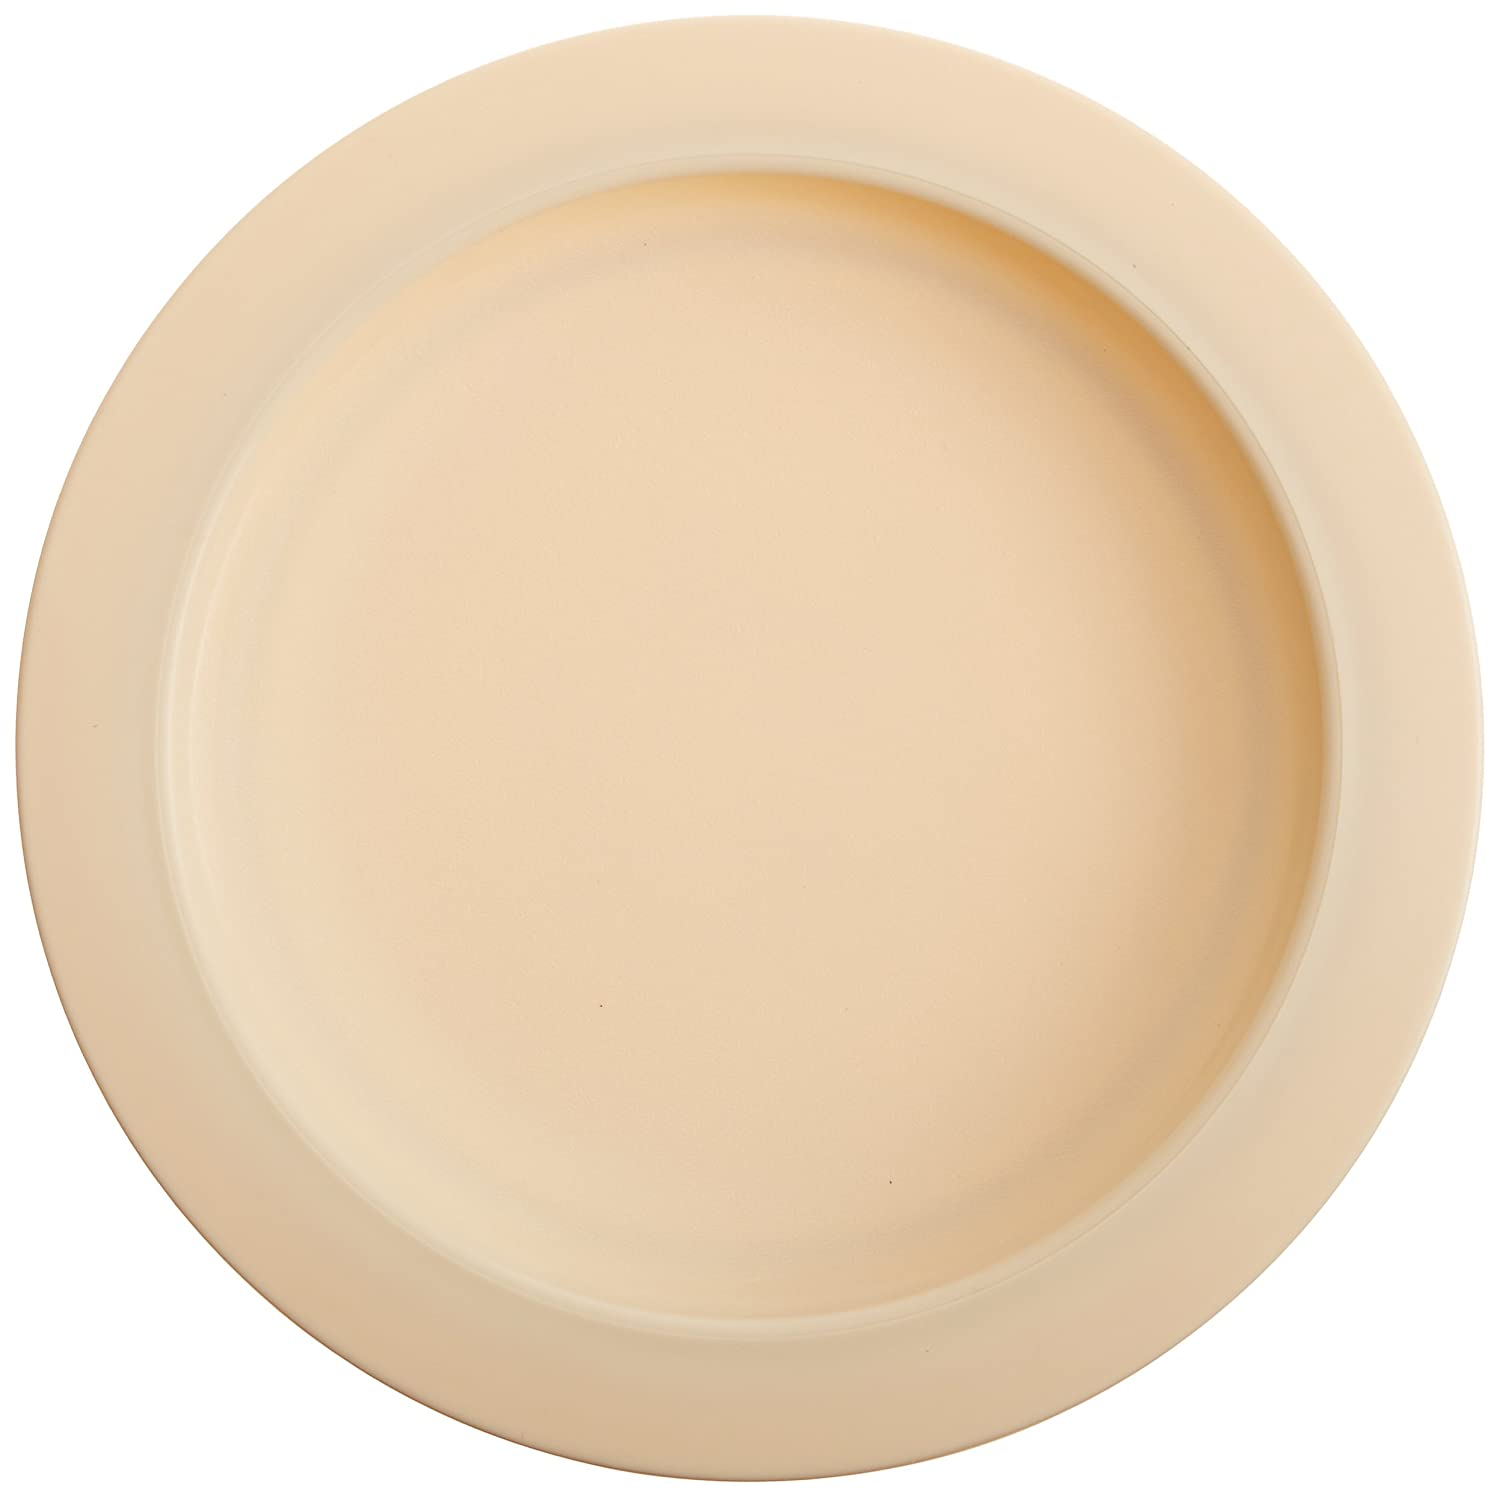 """Sammons Preston Plate with Inside Edge, 9"""" Plate with Food Spill Prevention Aid, Durable Plates with Inner Lip, Eating Support for Children, Adults, Elderly and Disabled, Polypropylene, Off-White"""